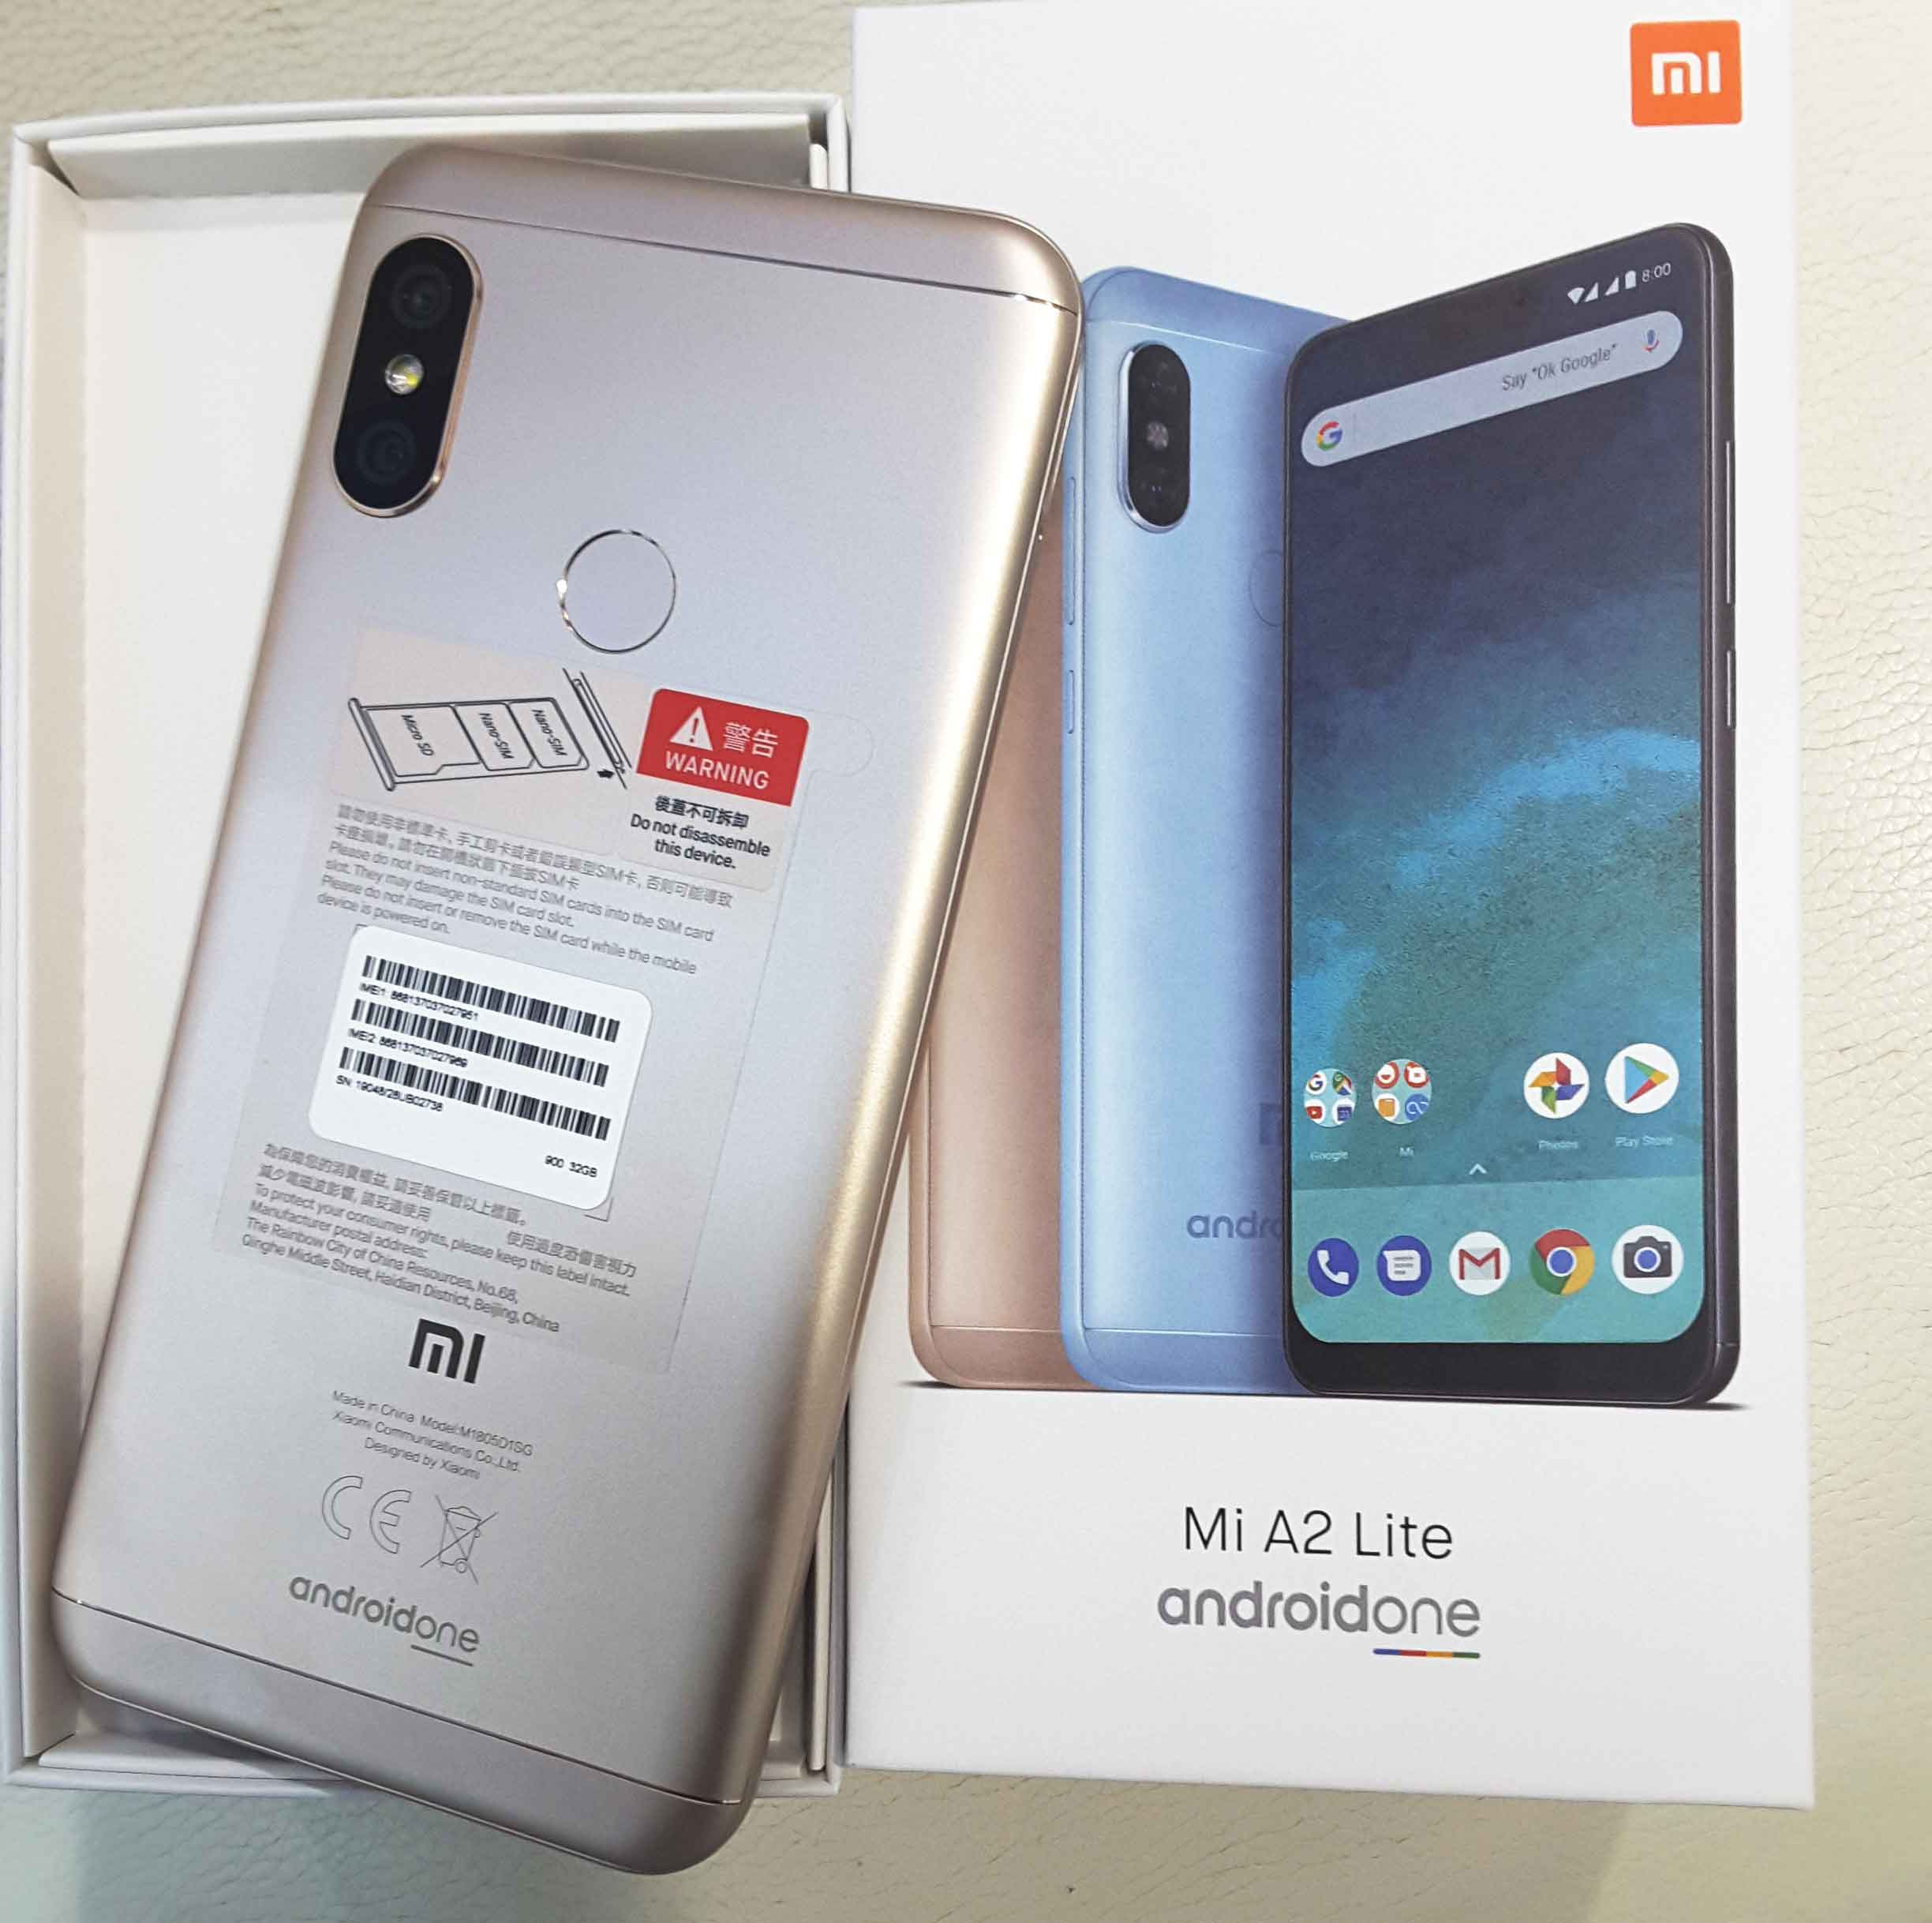 Mi A2 Lite (M1805D1SG) Specifications ,images and price.